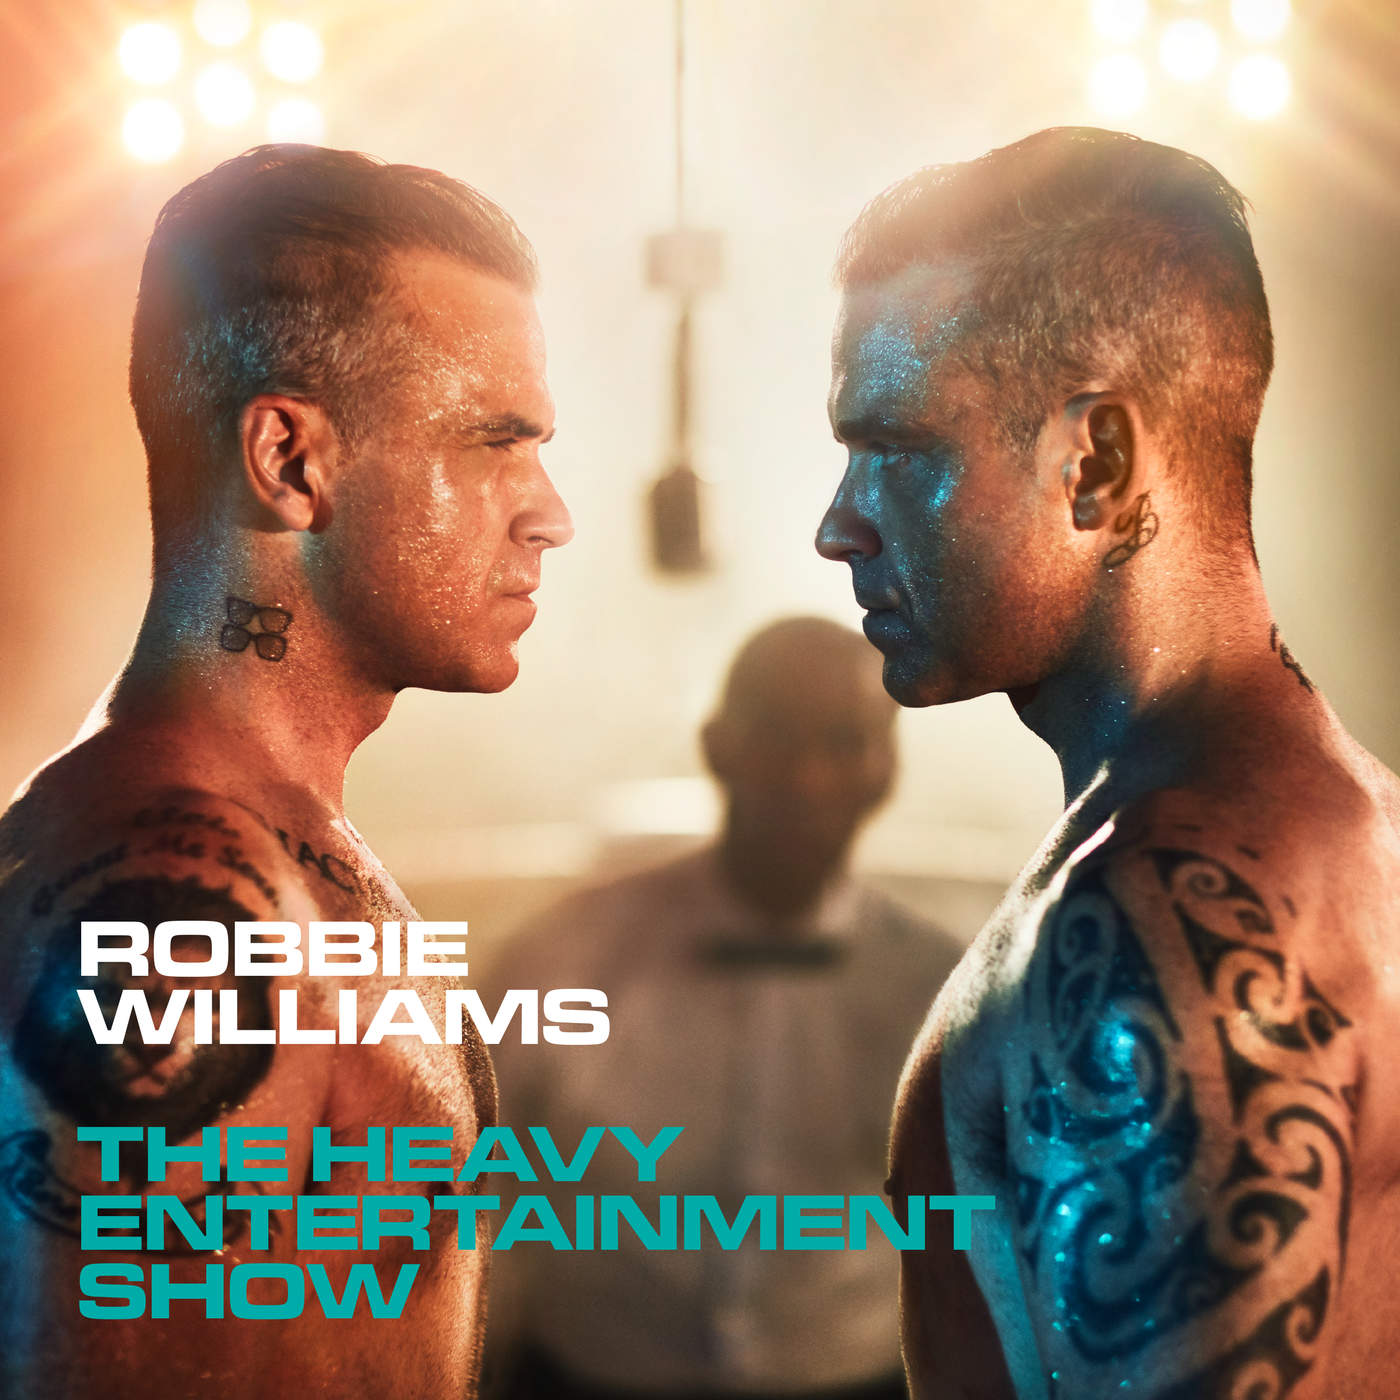 Robbie Williams - The Heavy Entertainment Show (Deluxe) Cover